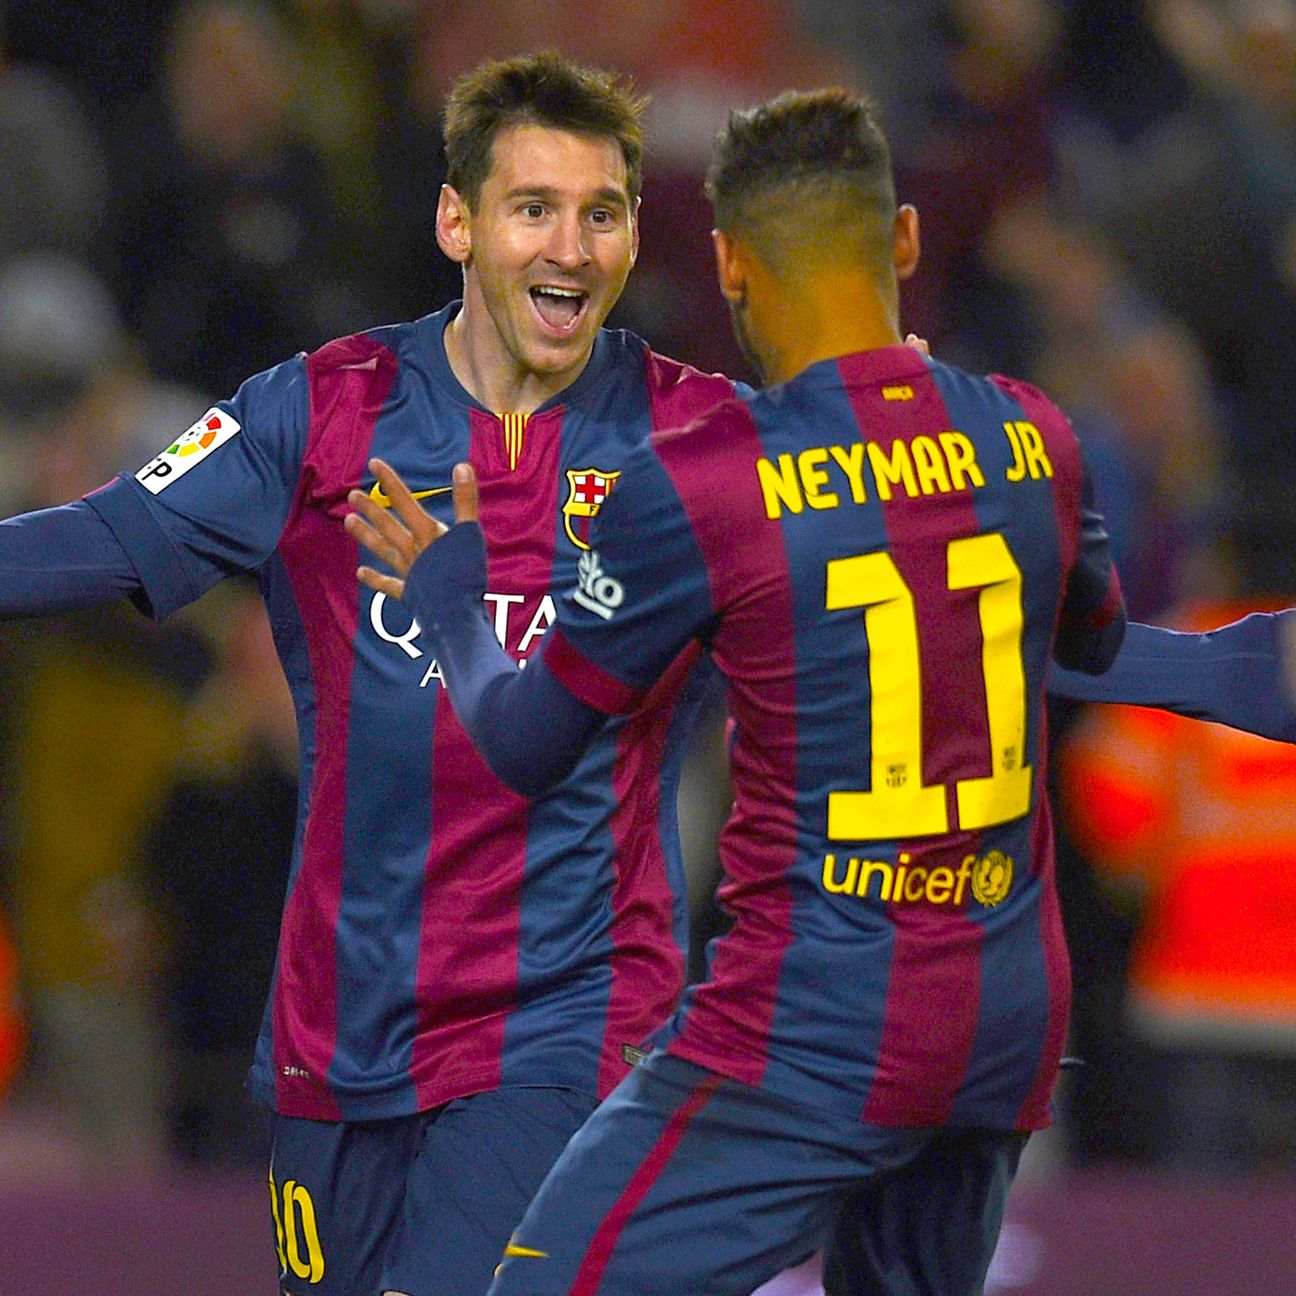 If Neymar scores for Barcelona, there is a good chance it was assisted by Lionel Messi.